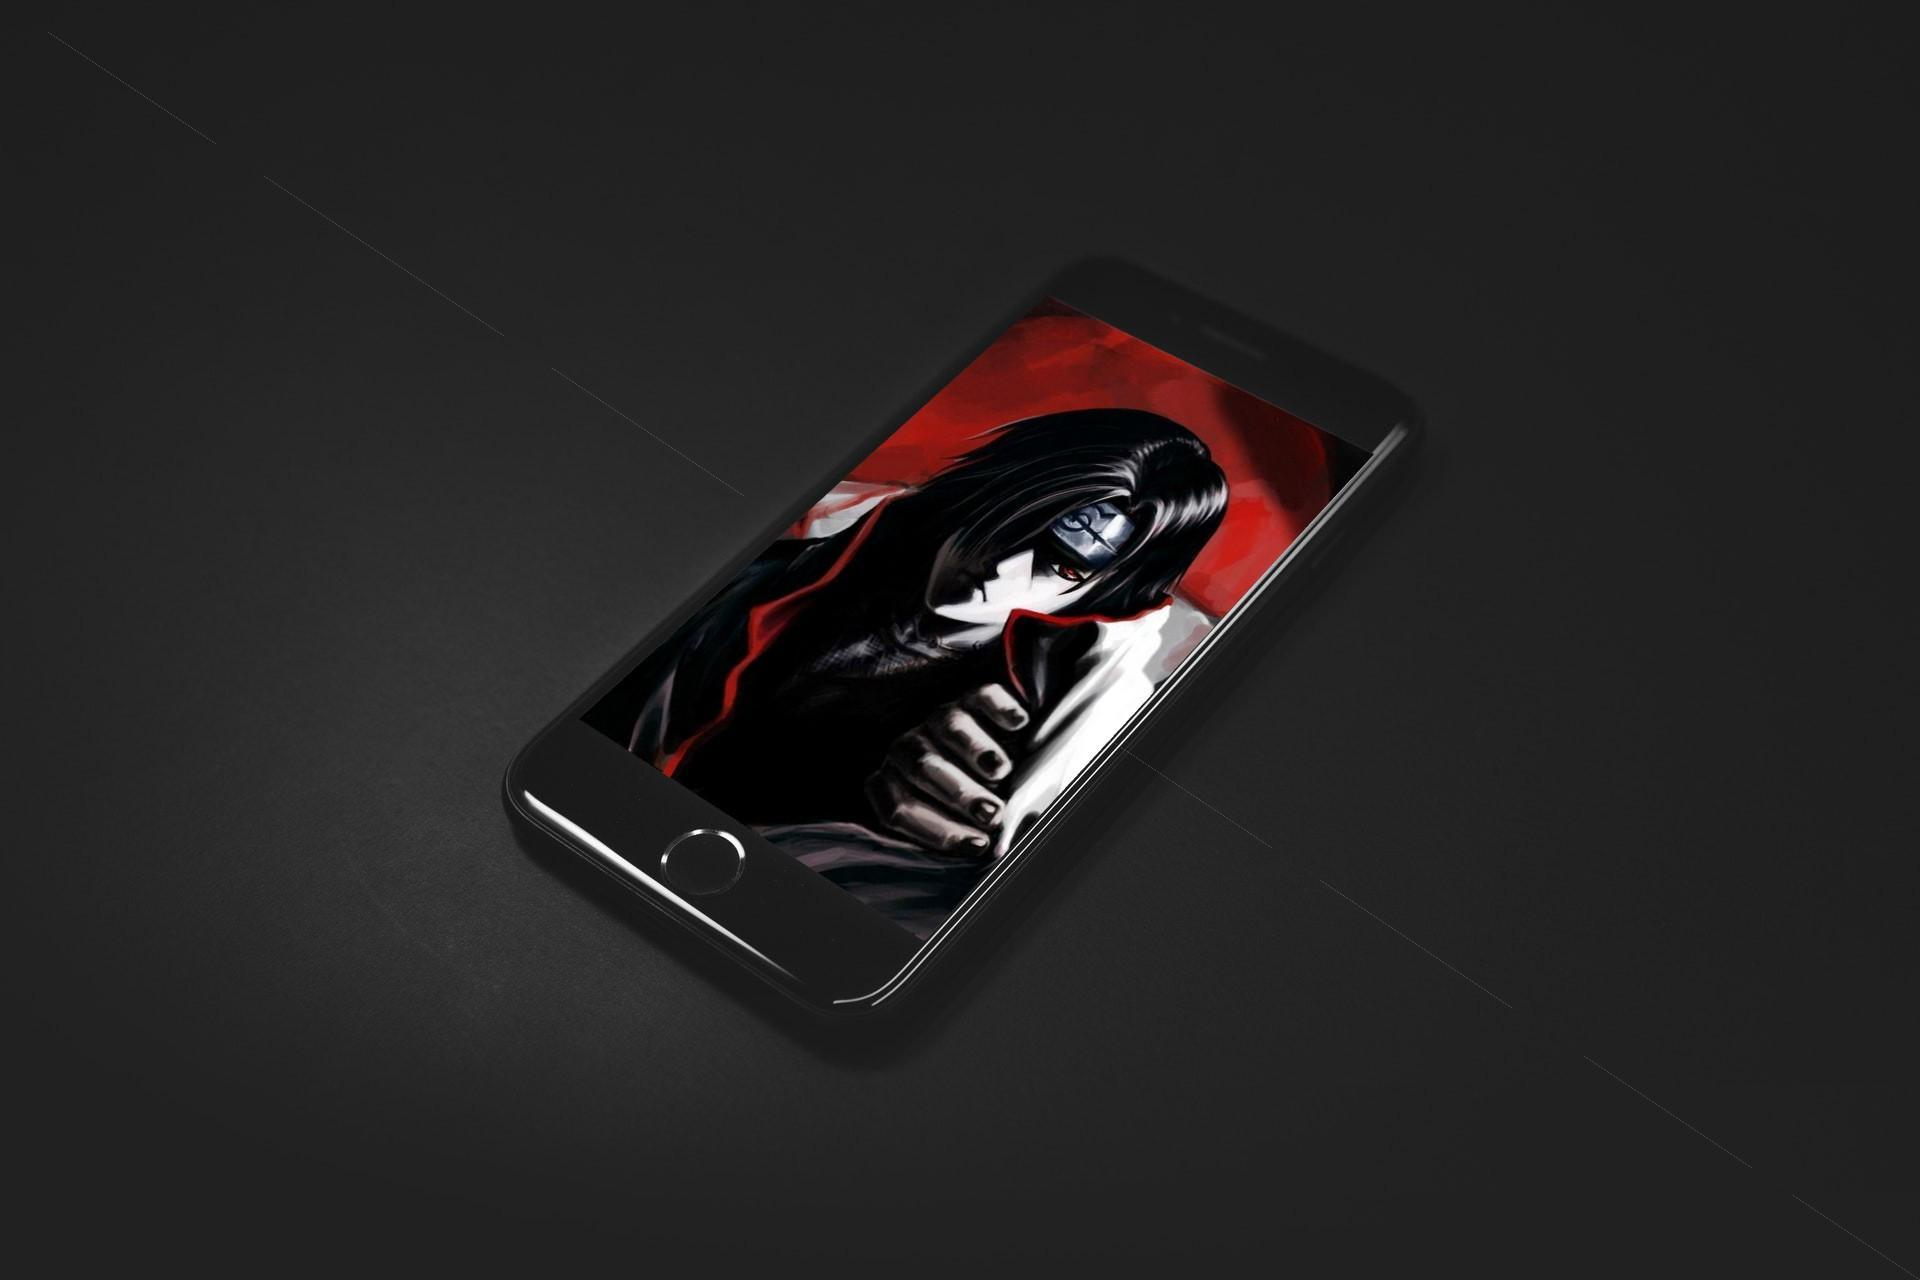 Itachi Uchiha Wallpapers Hd 4k For Android Apk Download